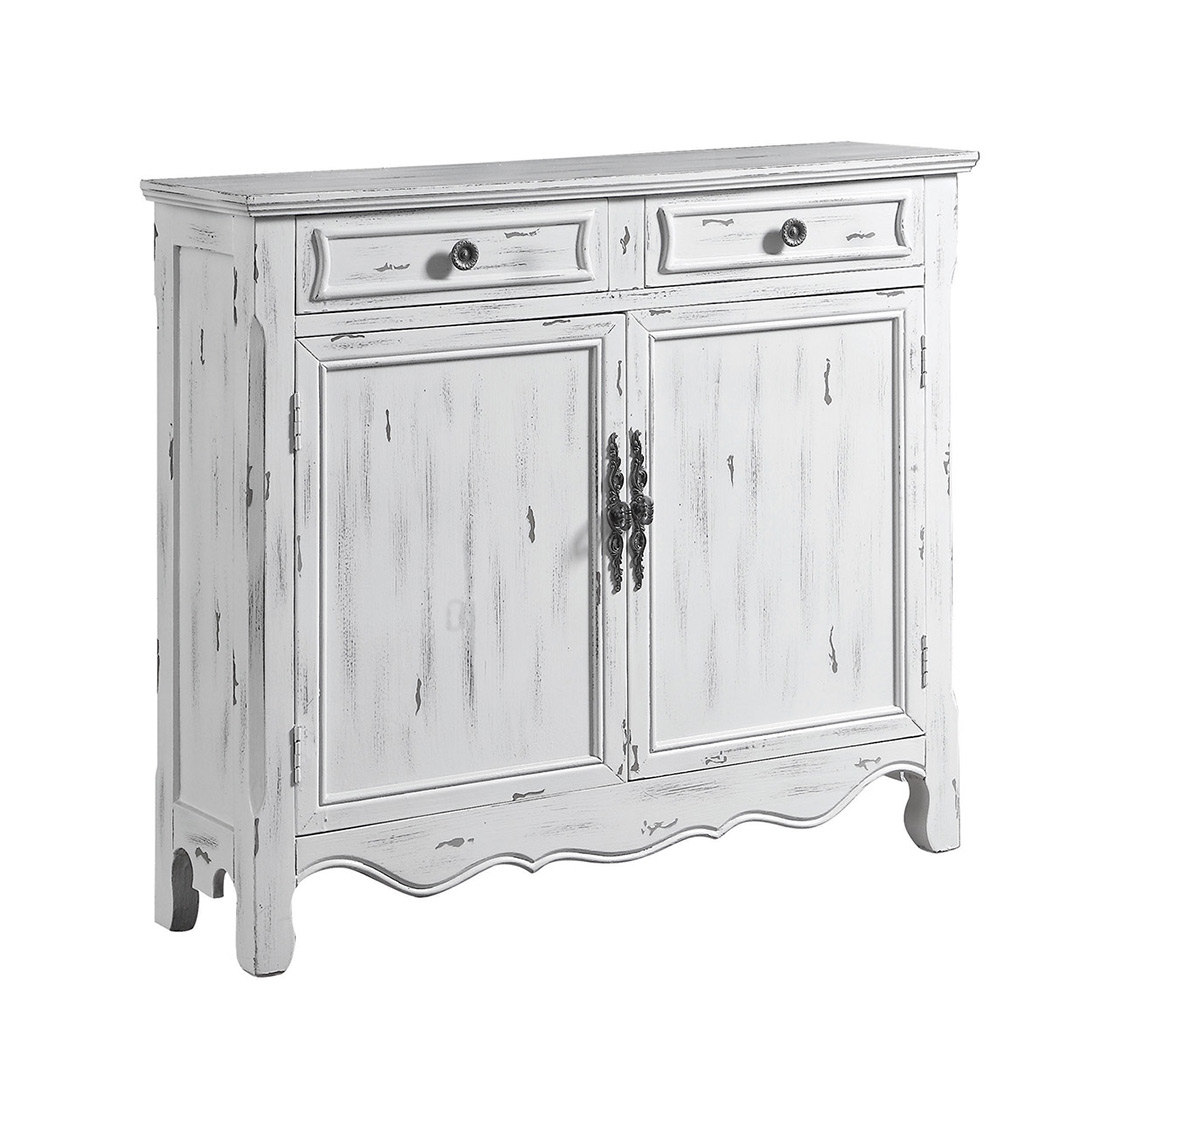 Coaster 950737 Accent Cabinet  Distressed White 950737 at